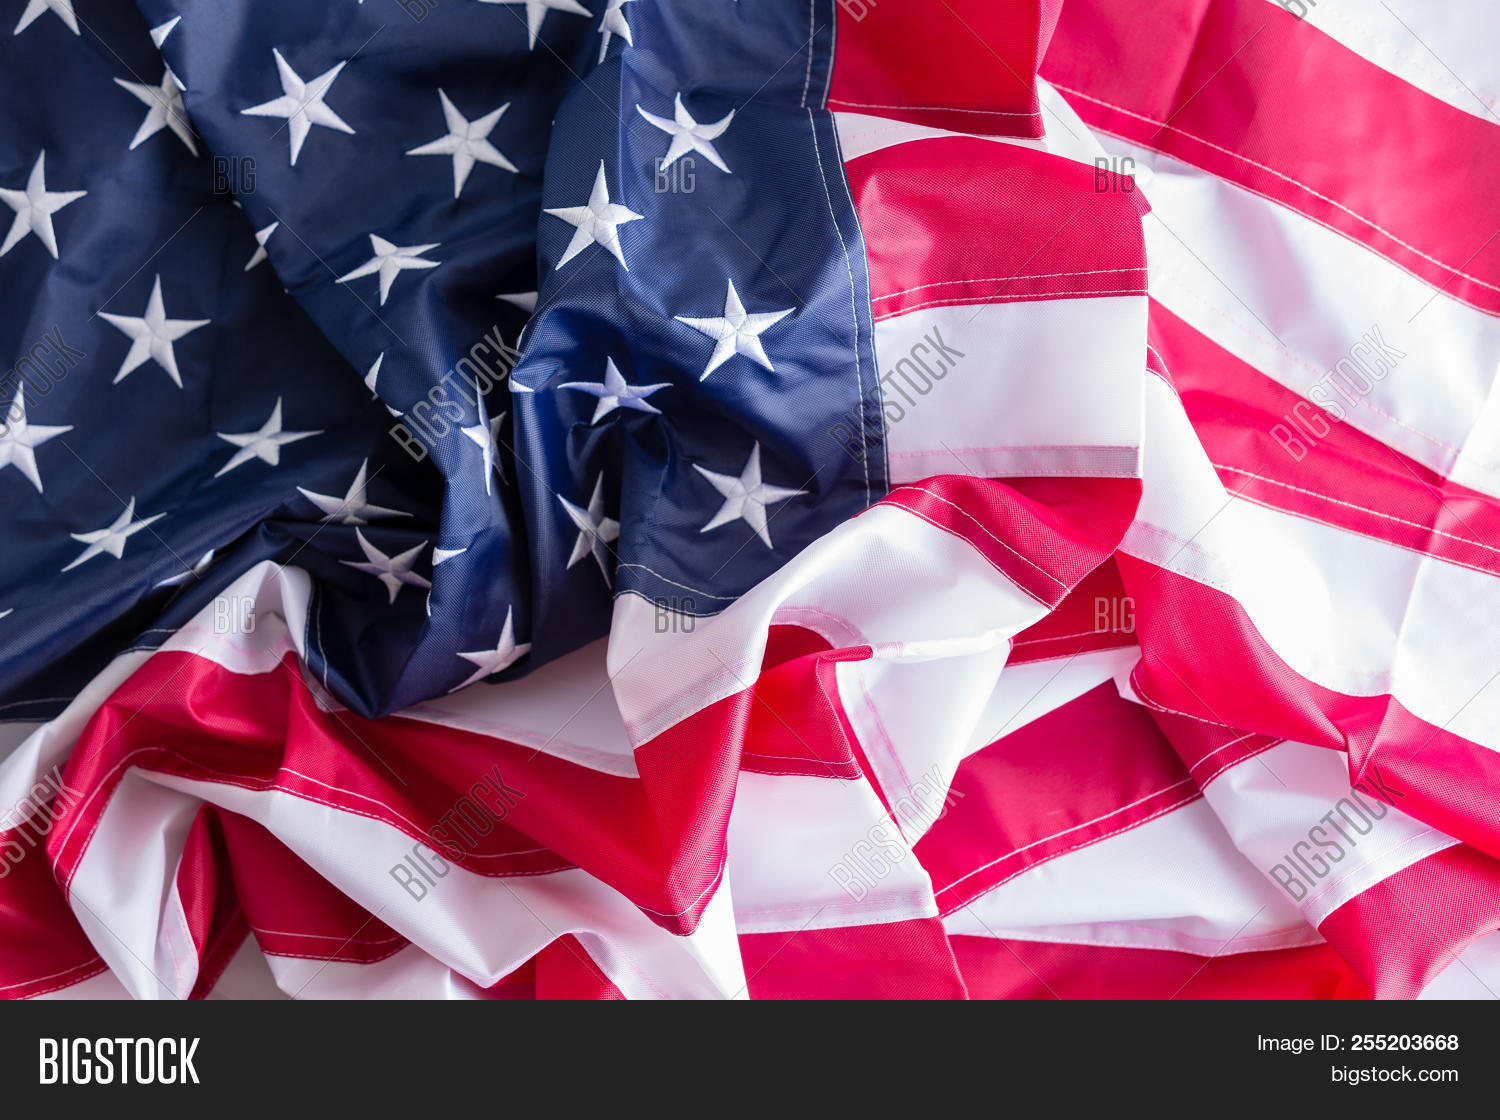 4th,allegorical,america,american,and,backdrop,background,banner,blue,celebration,colonies,country,crumpled,day,detail,emblem,ensign,fabric,festival,flag,folds,frame,freedom,full,gathered,glory,government,identity,independence,insignia,july,national,nationality,old,patriotic,patriotism,pattern,politics,red,rumpled,star-spangled,stars,states,stripes,textile,texture,united,usa,white